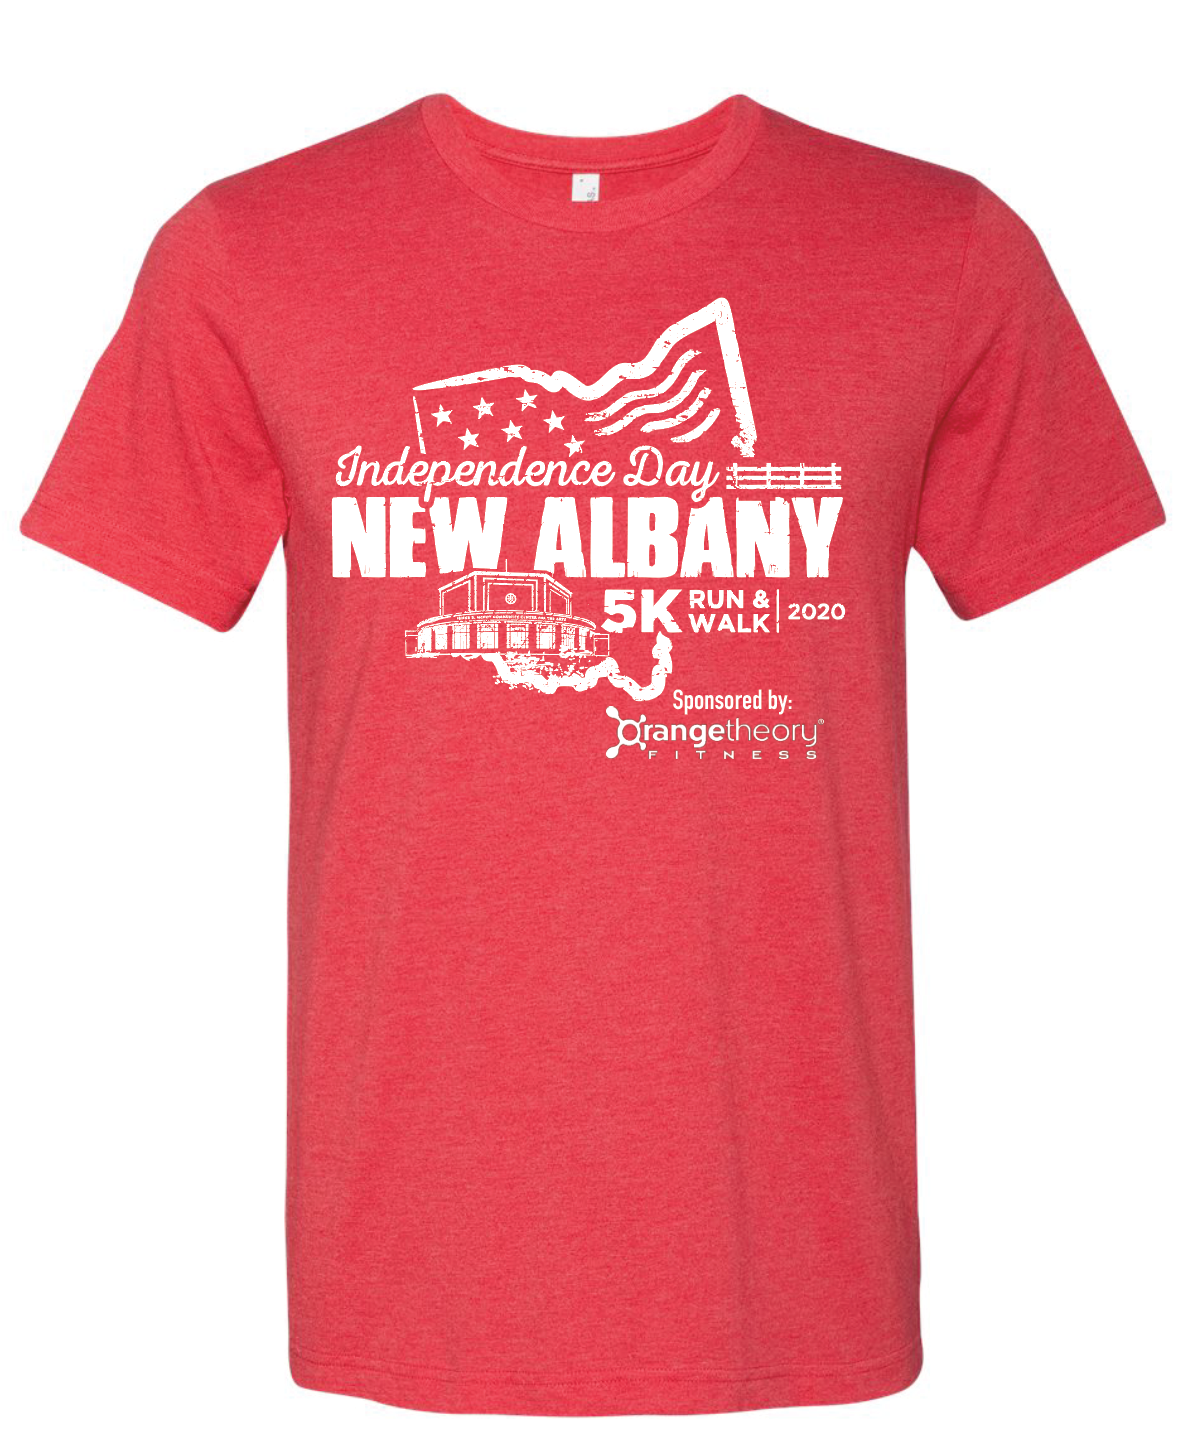 New Albany Independence Day Tshirt